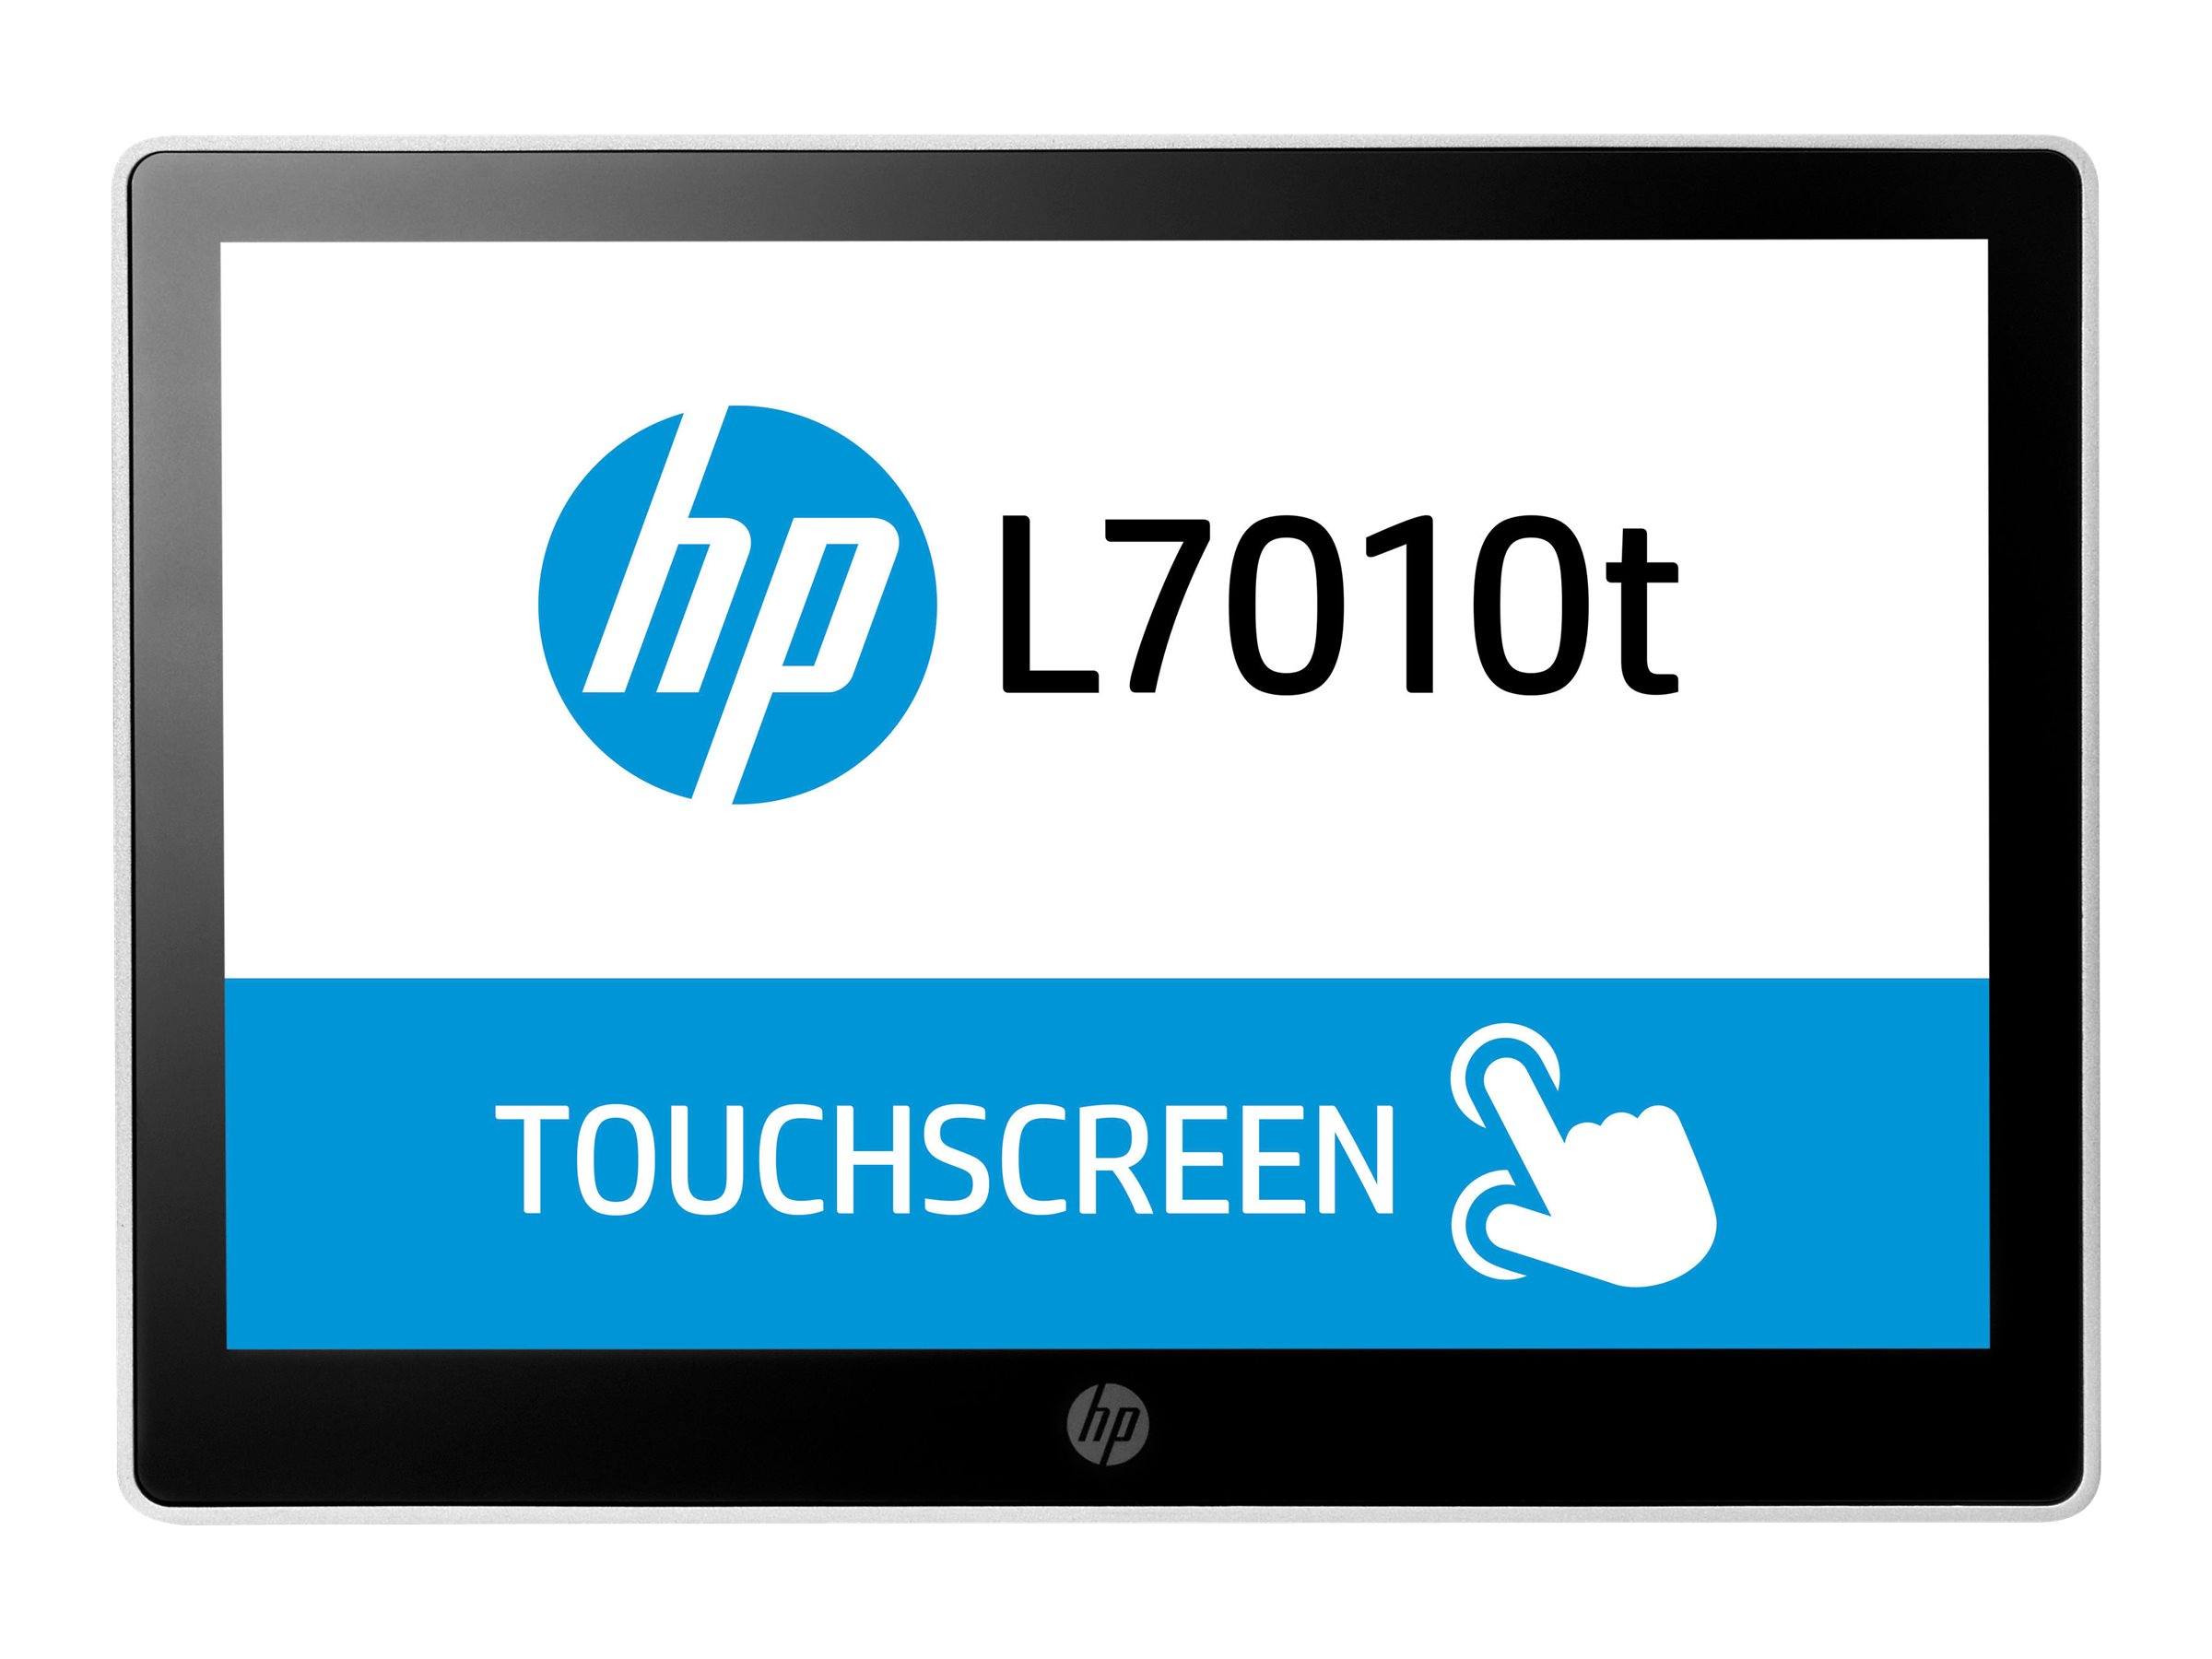 "HP L7010t Retail Touch Monitor - LED monitor - 10.1"" - Smart Buy"